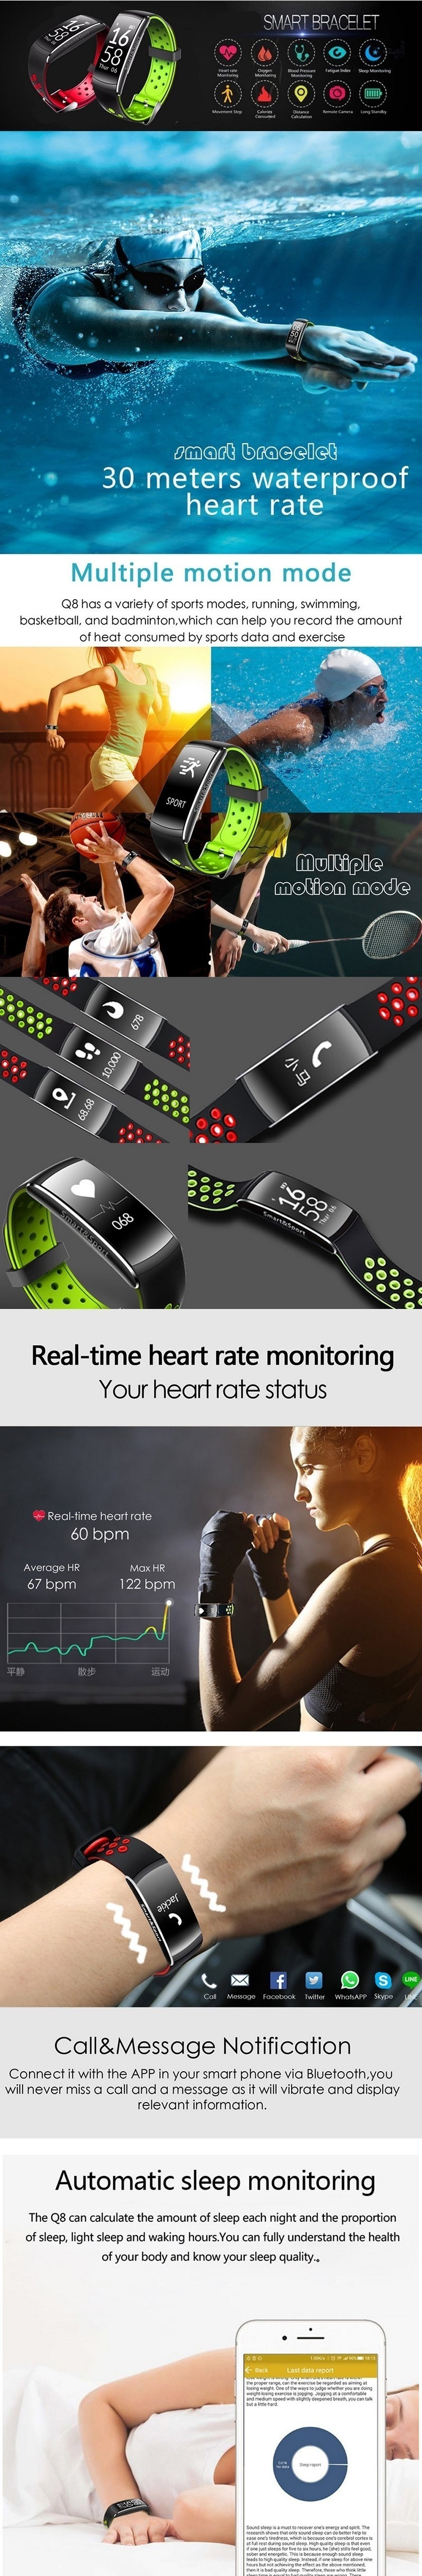 Product details of Q8 Wristband Heart Rate Blood Pressure Monitor Smart Watch IP68 Water Proof Fitness Tracker For Android And IOS Phone - intl